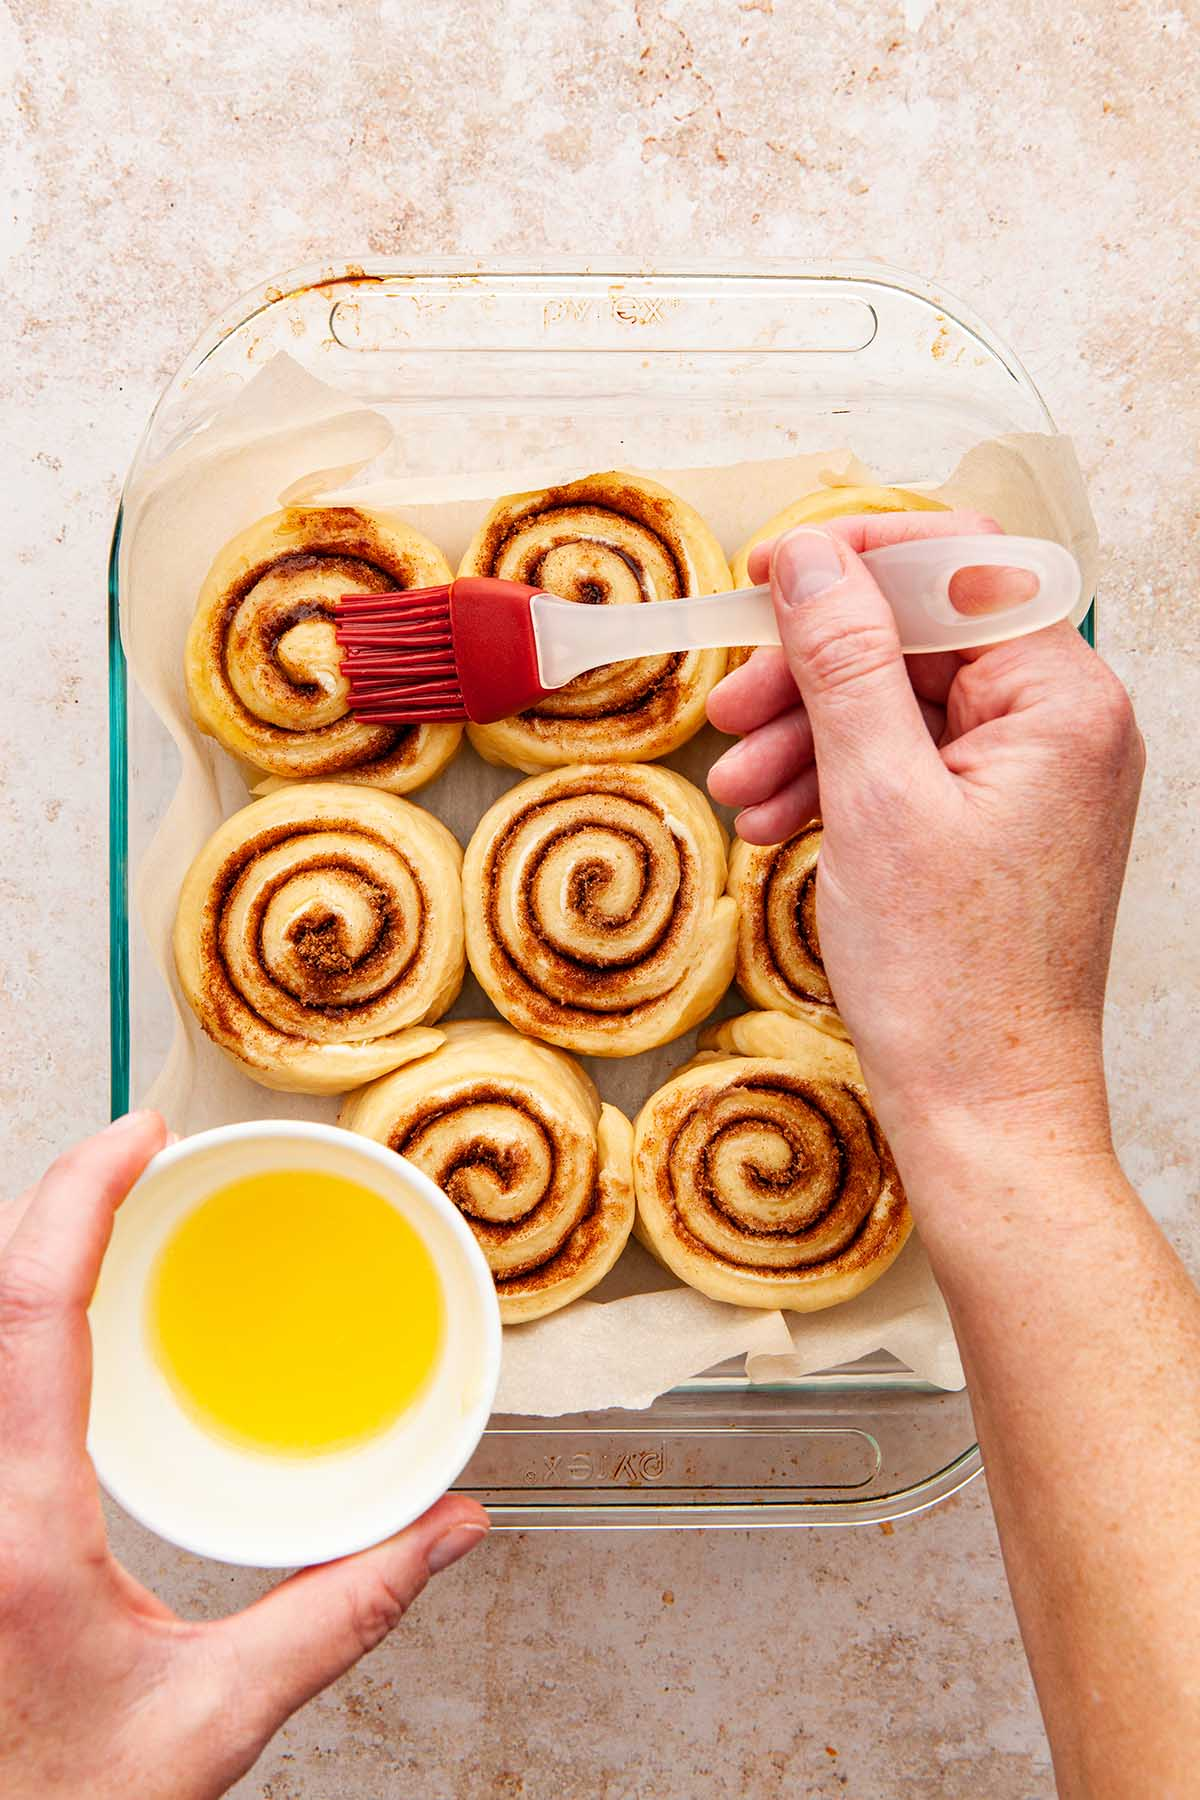 A hand brushing melted butter over the top of risen cinnamon buns.